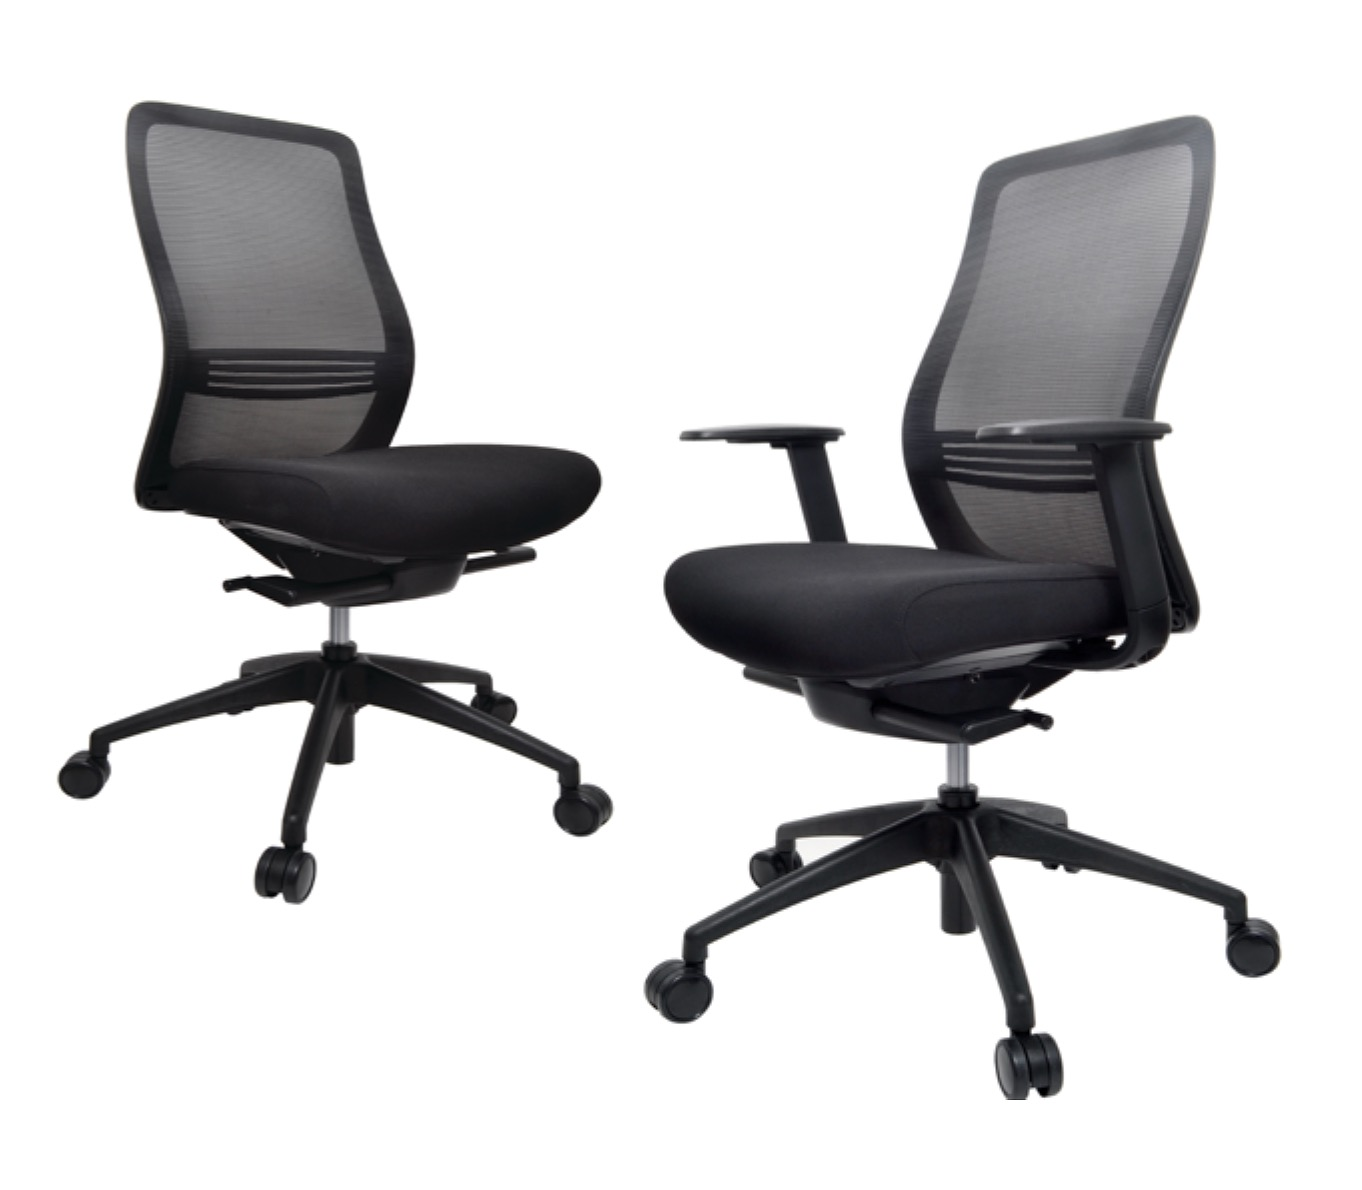 V5 luna task and meeting chair